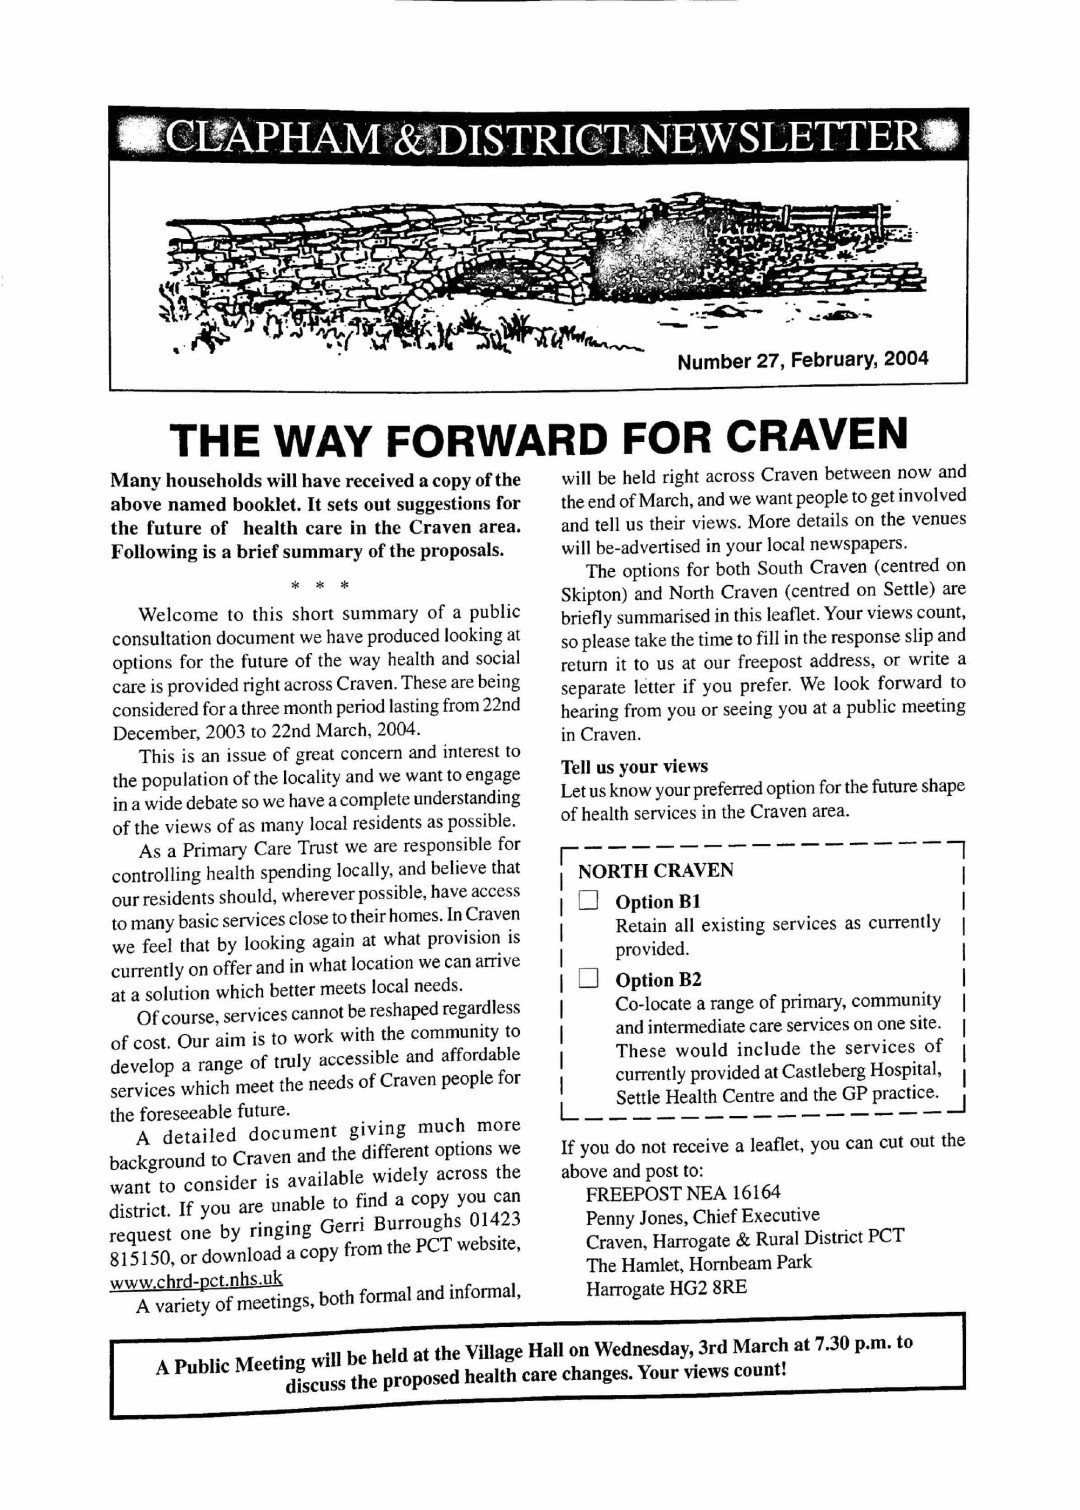 Clapham_Newsletter_No27_February_2004-1